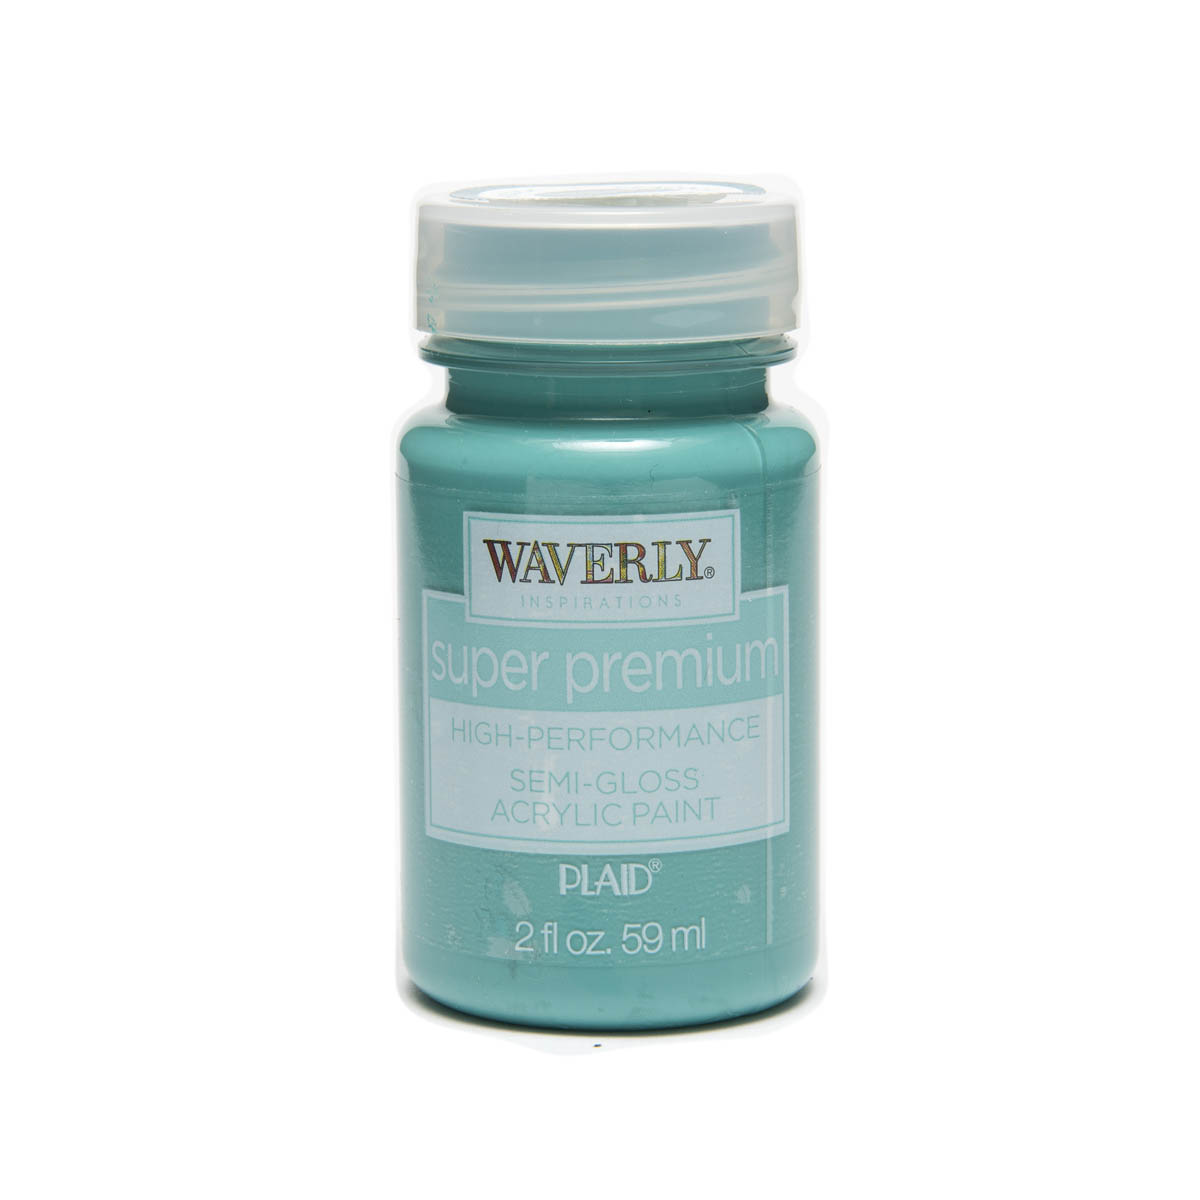 Waverly ® Inspirations Super Premium Semi-Gloss Acrylic Paint - Peacock, 2 oz. - 60638E